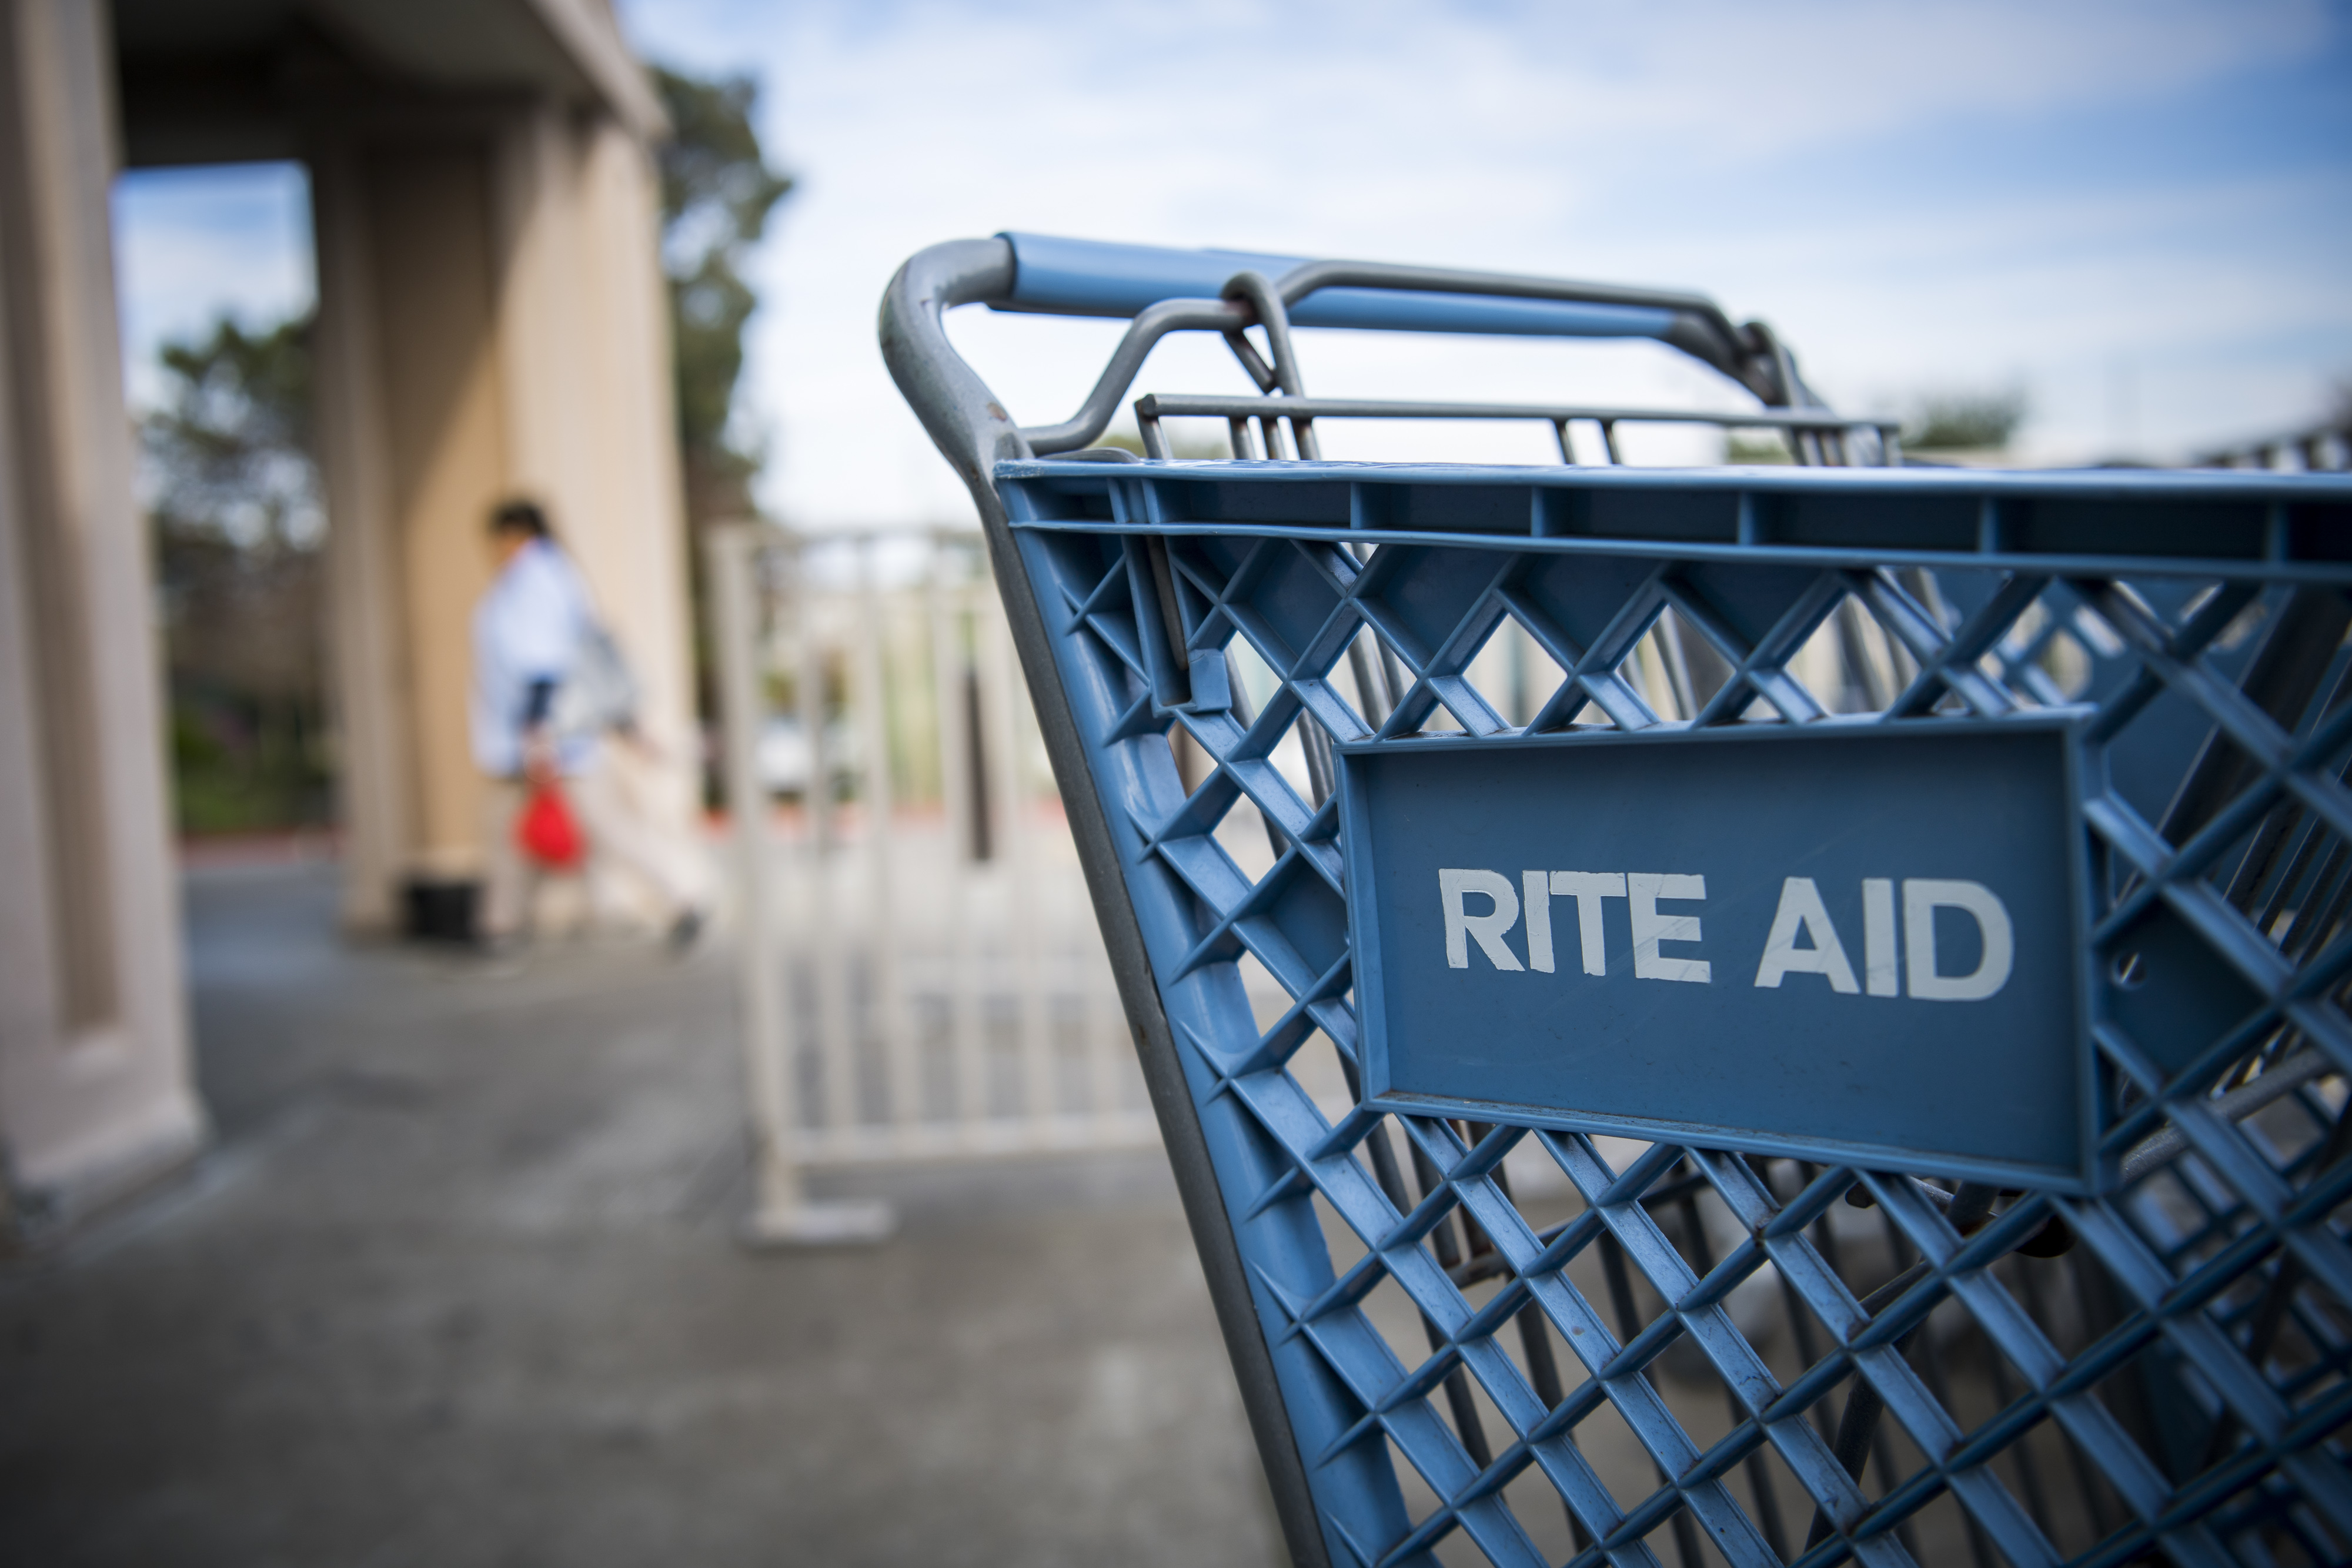 Rite Aid stores that accept EBT, Food Stamps in Georgia